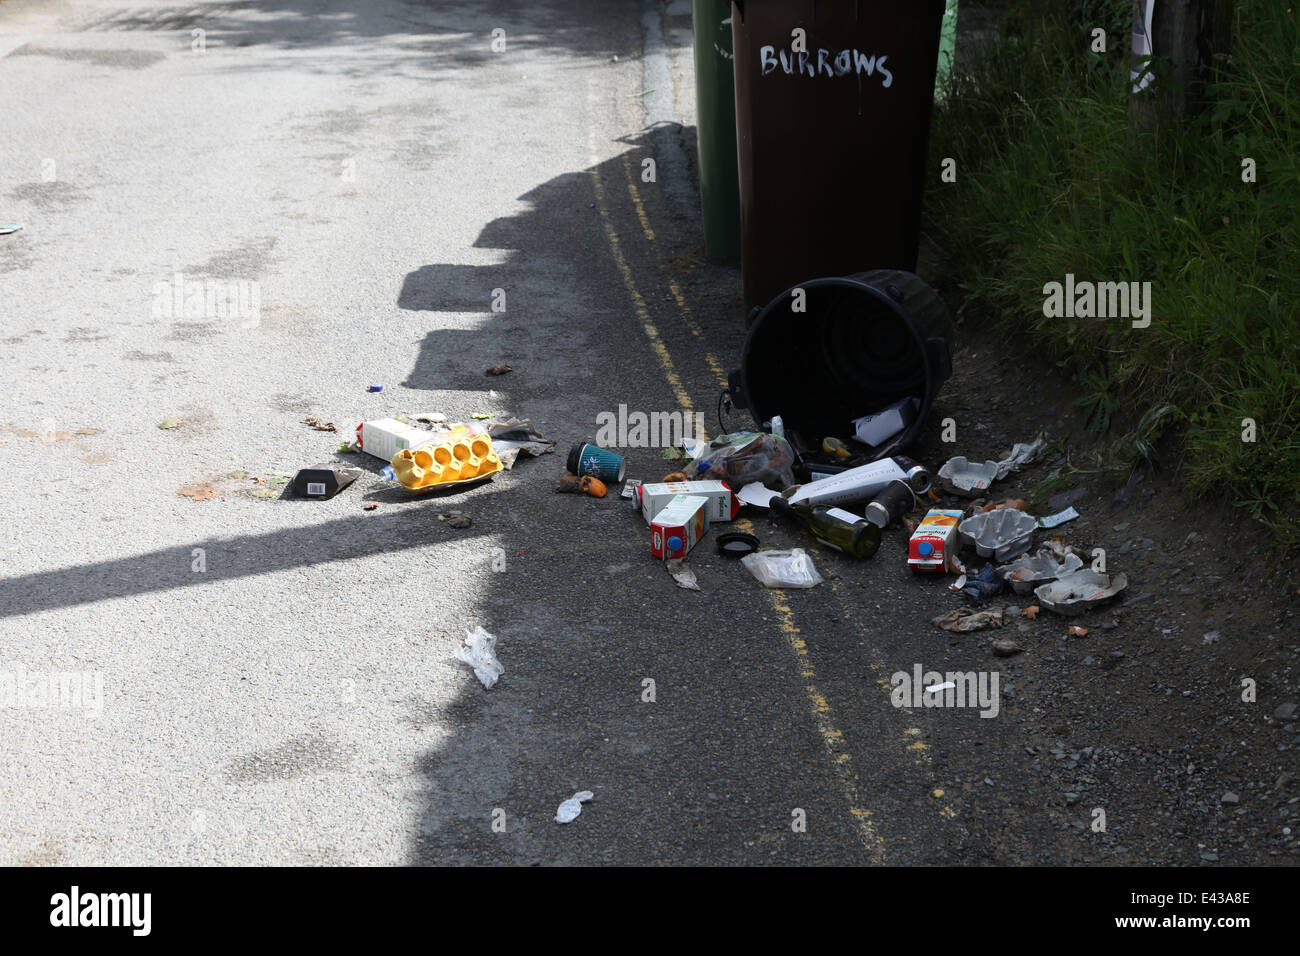 Rubbish bag opened by fox - Stock Image